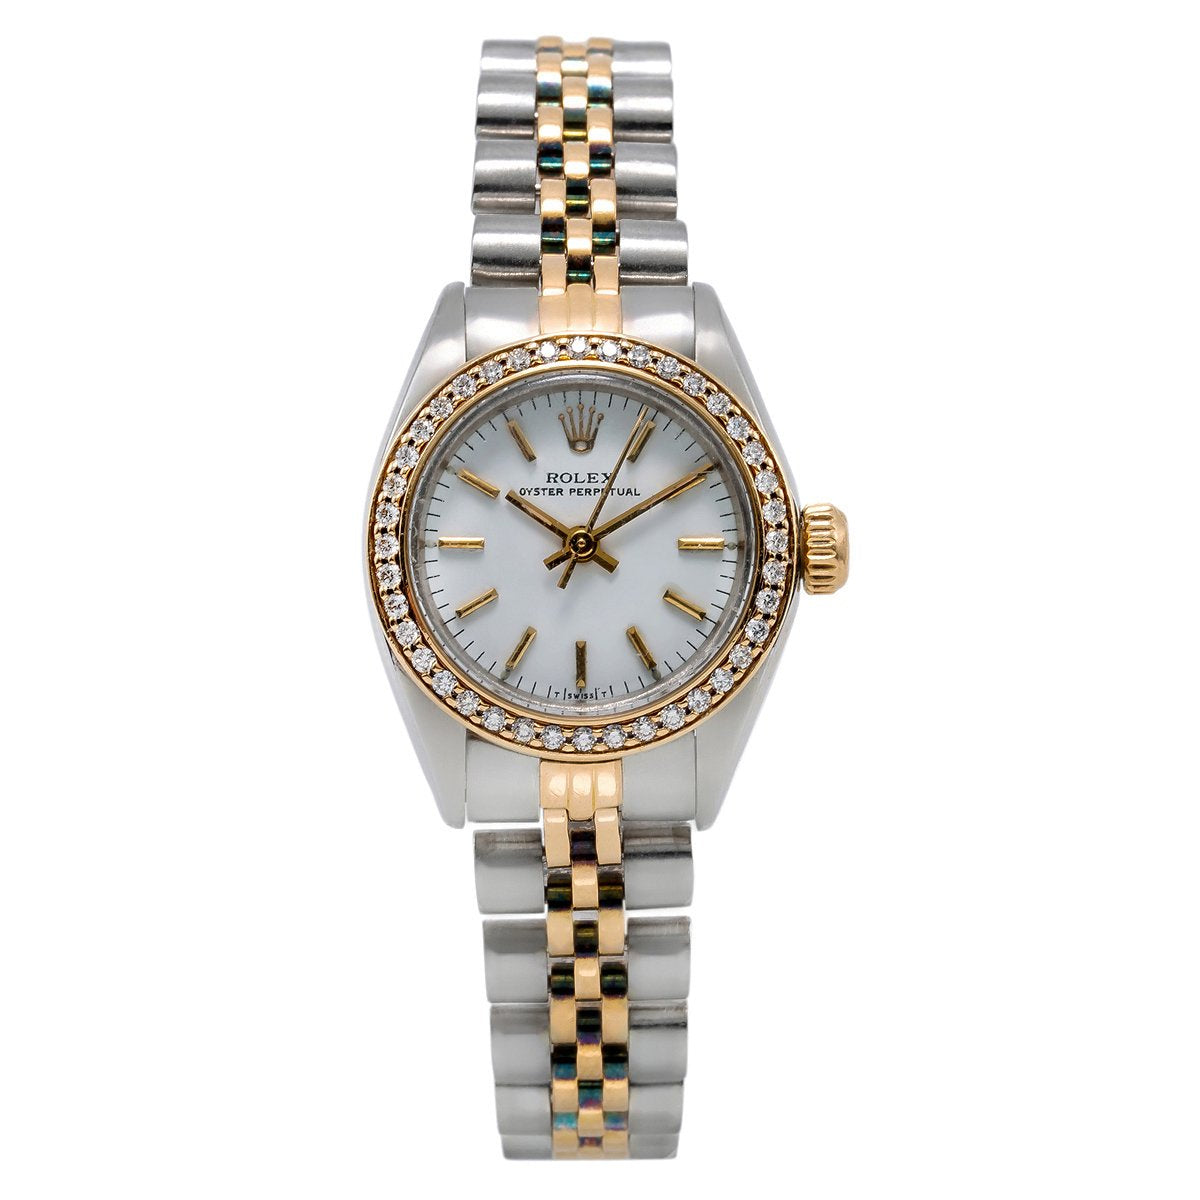 Rolex Oyster Perpetual Diamond Watch, 26mm, White Dial with 0.80CT Diamond Bezel